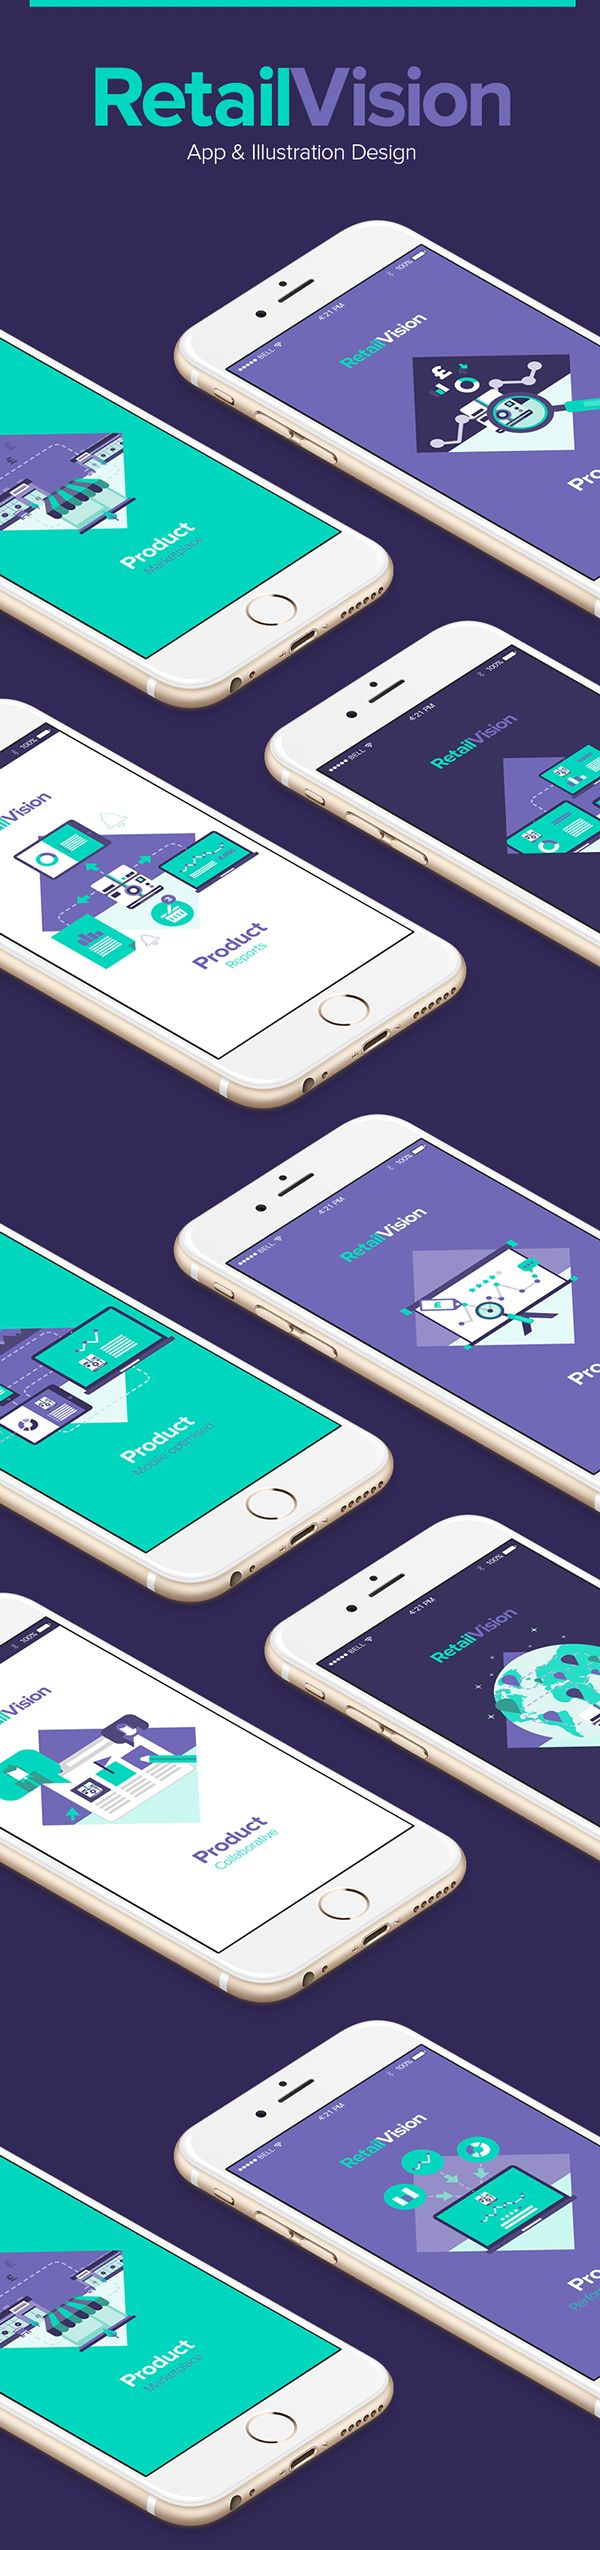 RetailVision // App & Illustration on Behance